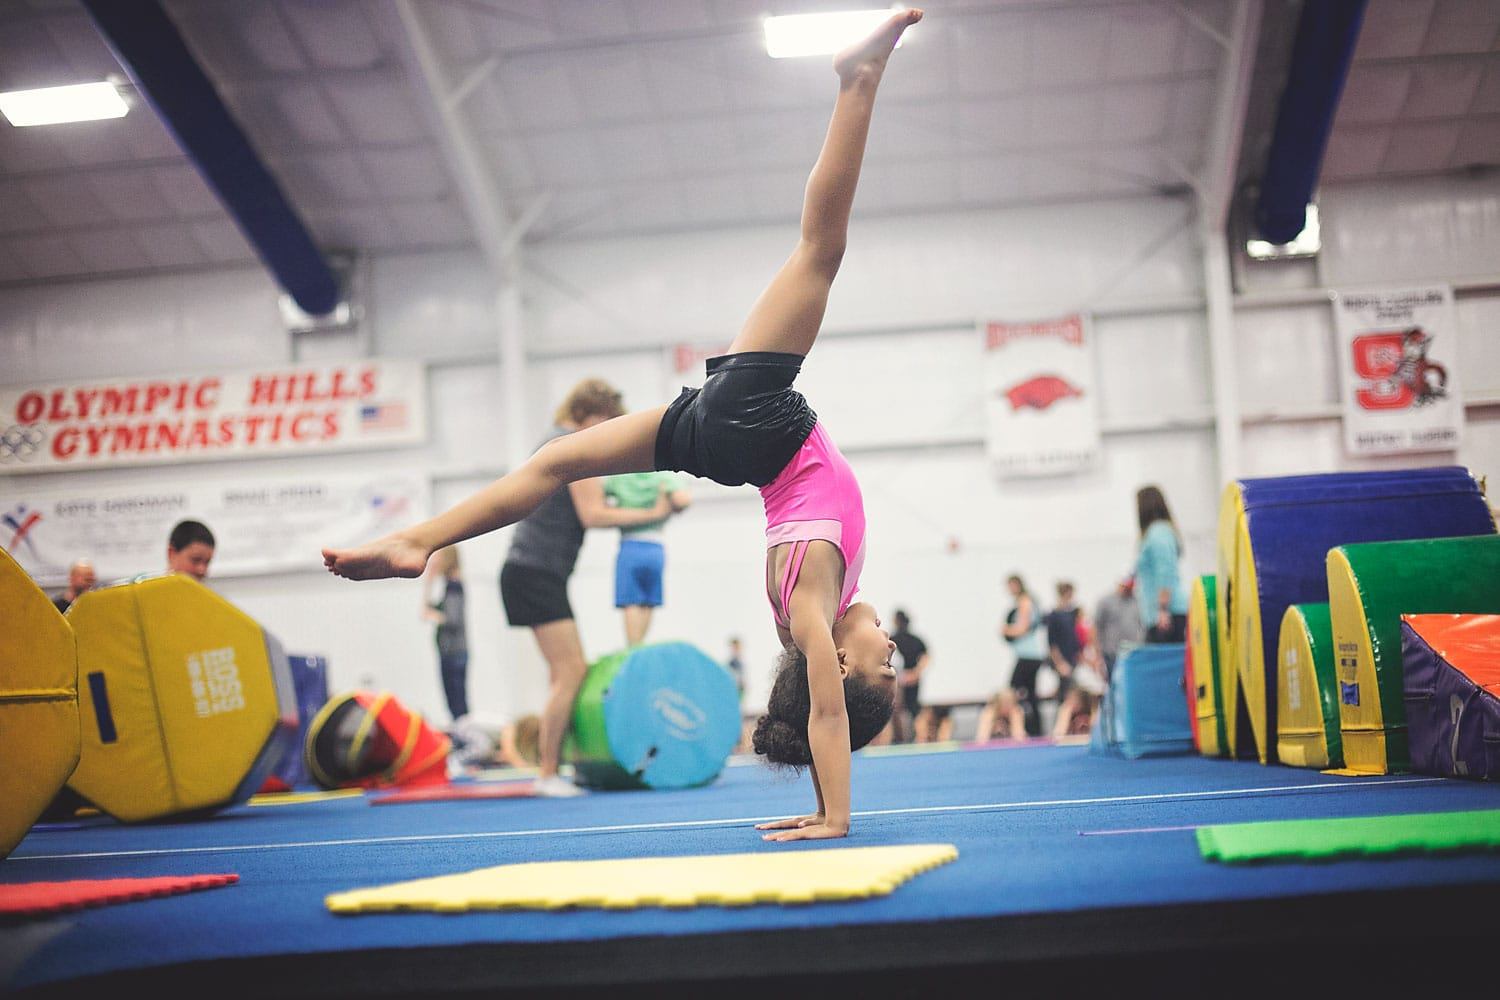 Tiny gymnast 6-years-old. It's crazy watching your child become a person.